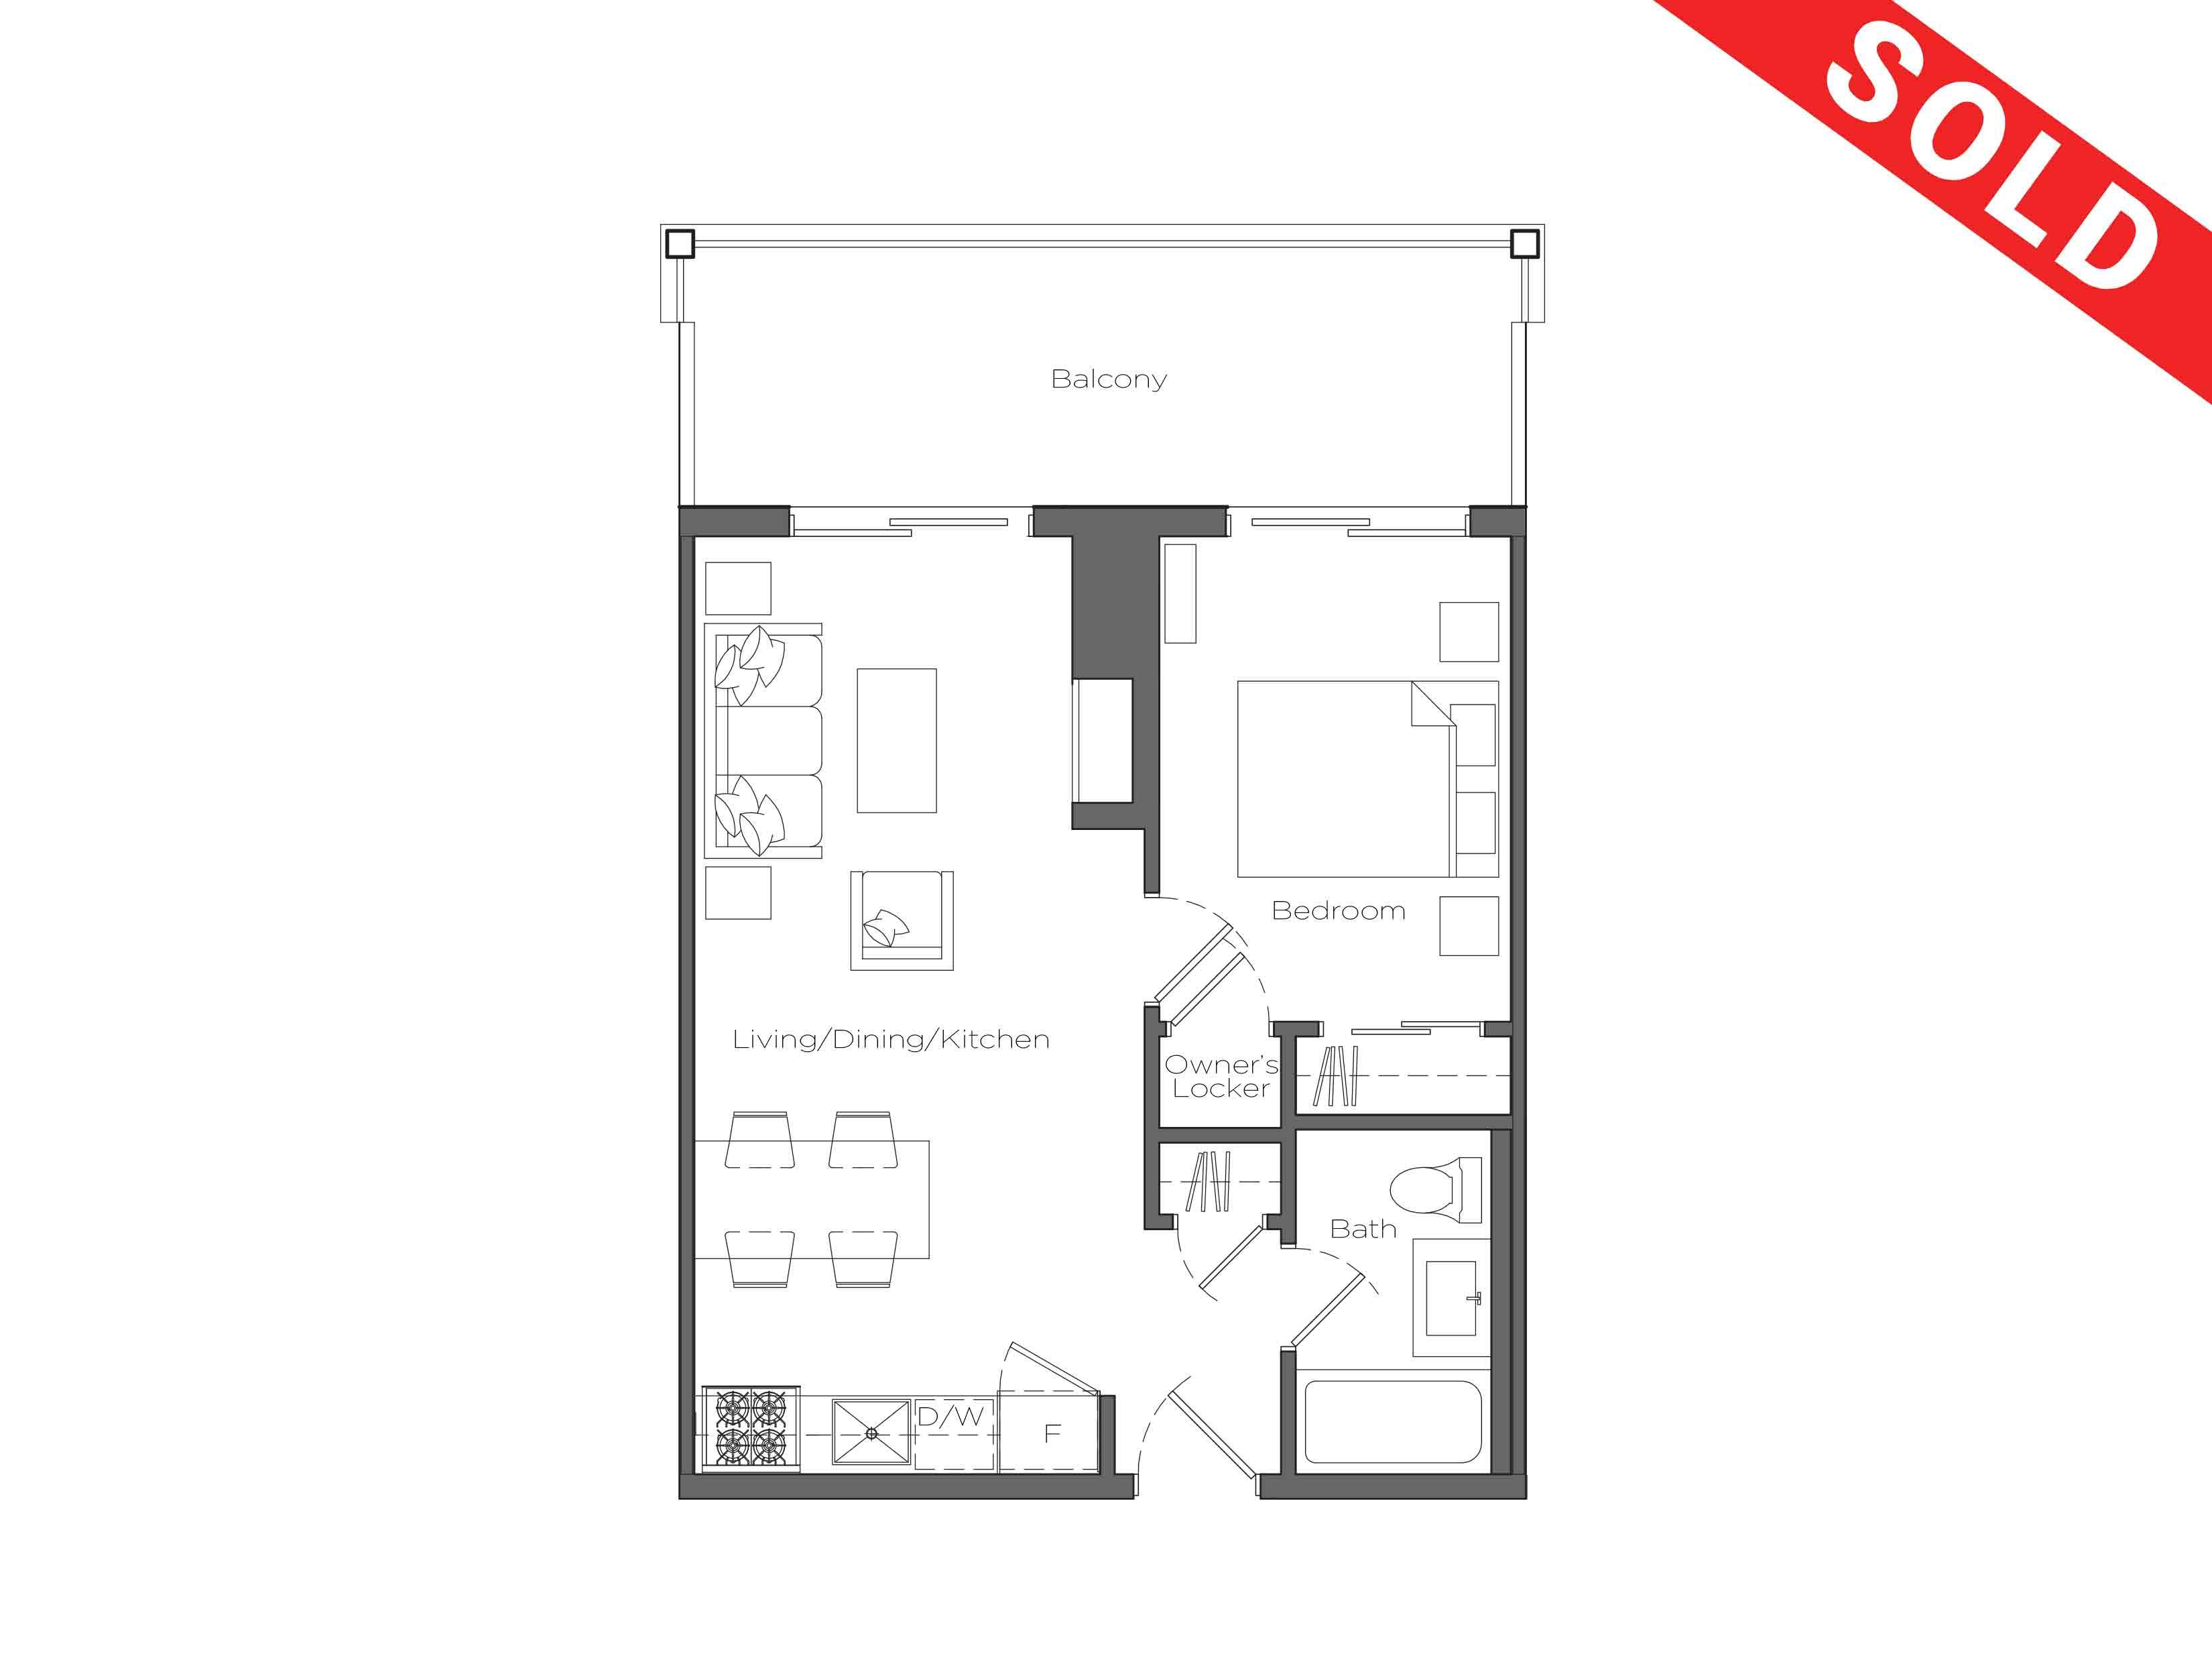 The Spring Field 547 Sq Ft Lakeside Lodge At Deerhurst Resort Schematic